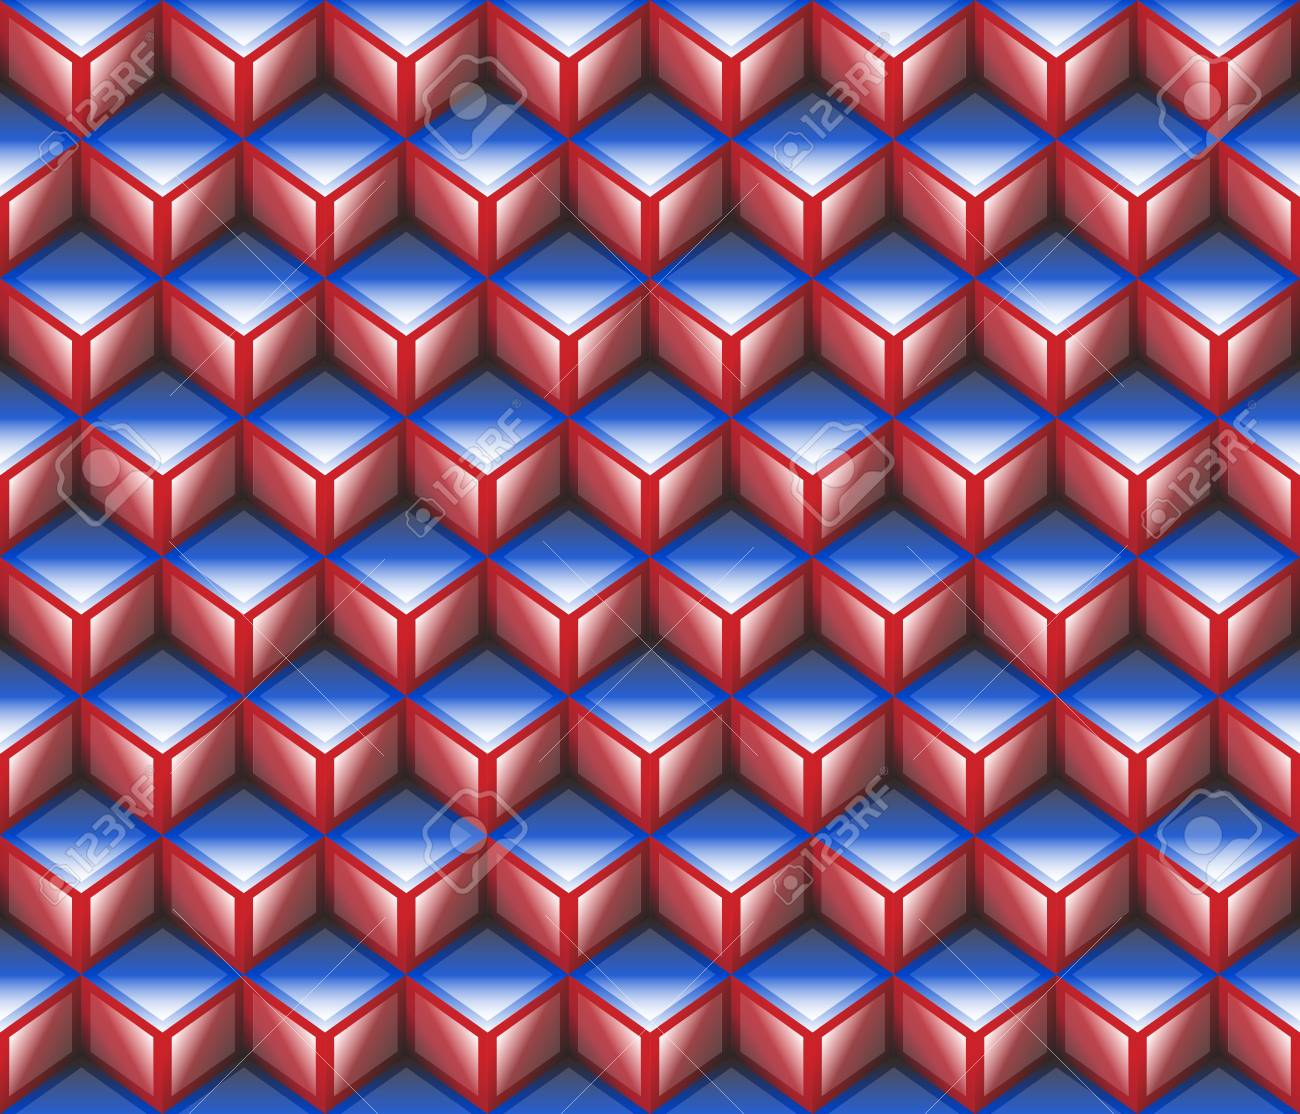 Red Blue 3d Cubes Contour Abstract Geometrical Seamless Pattern